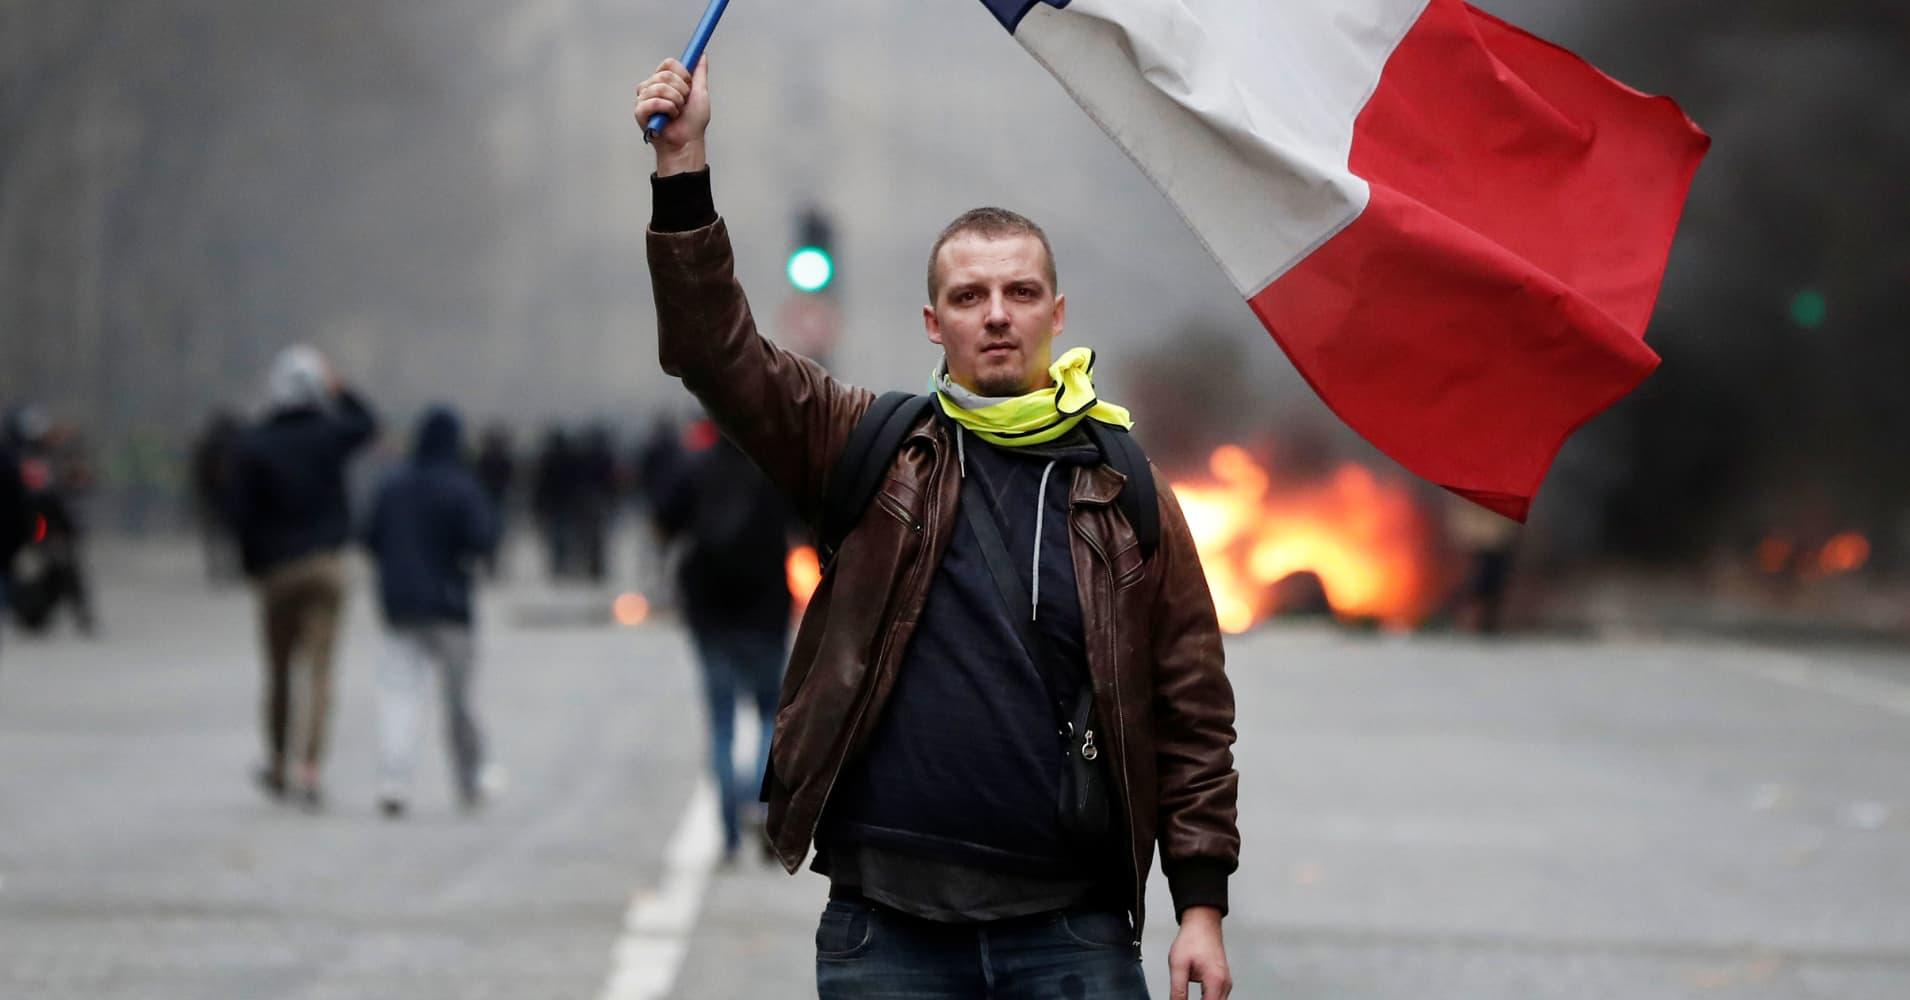 France riots: Macron expected to promise economic change but is it too late?